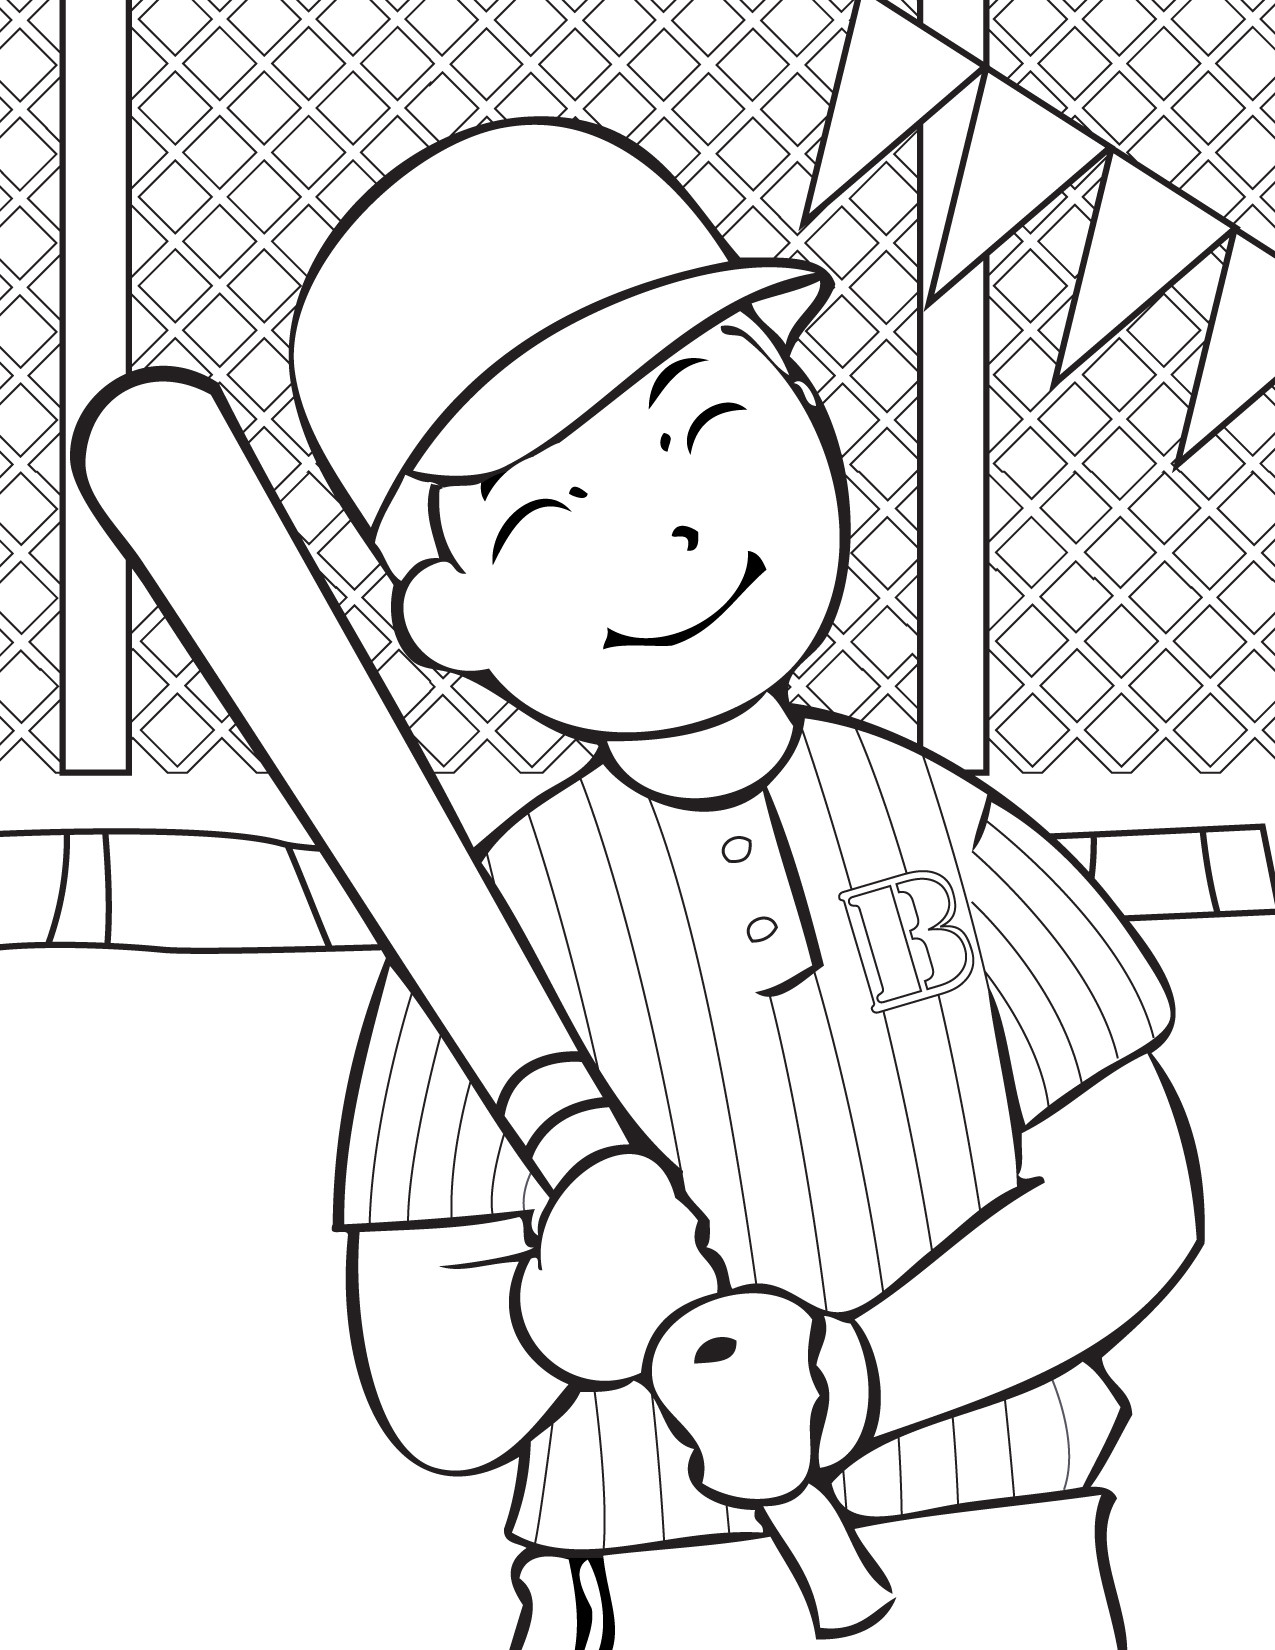 Sports Coloring Pages For Kids  Free Printable Baseball Coloring Pages for Kids Best